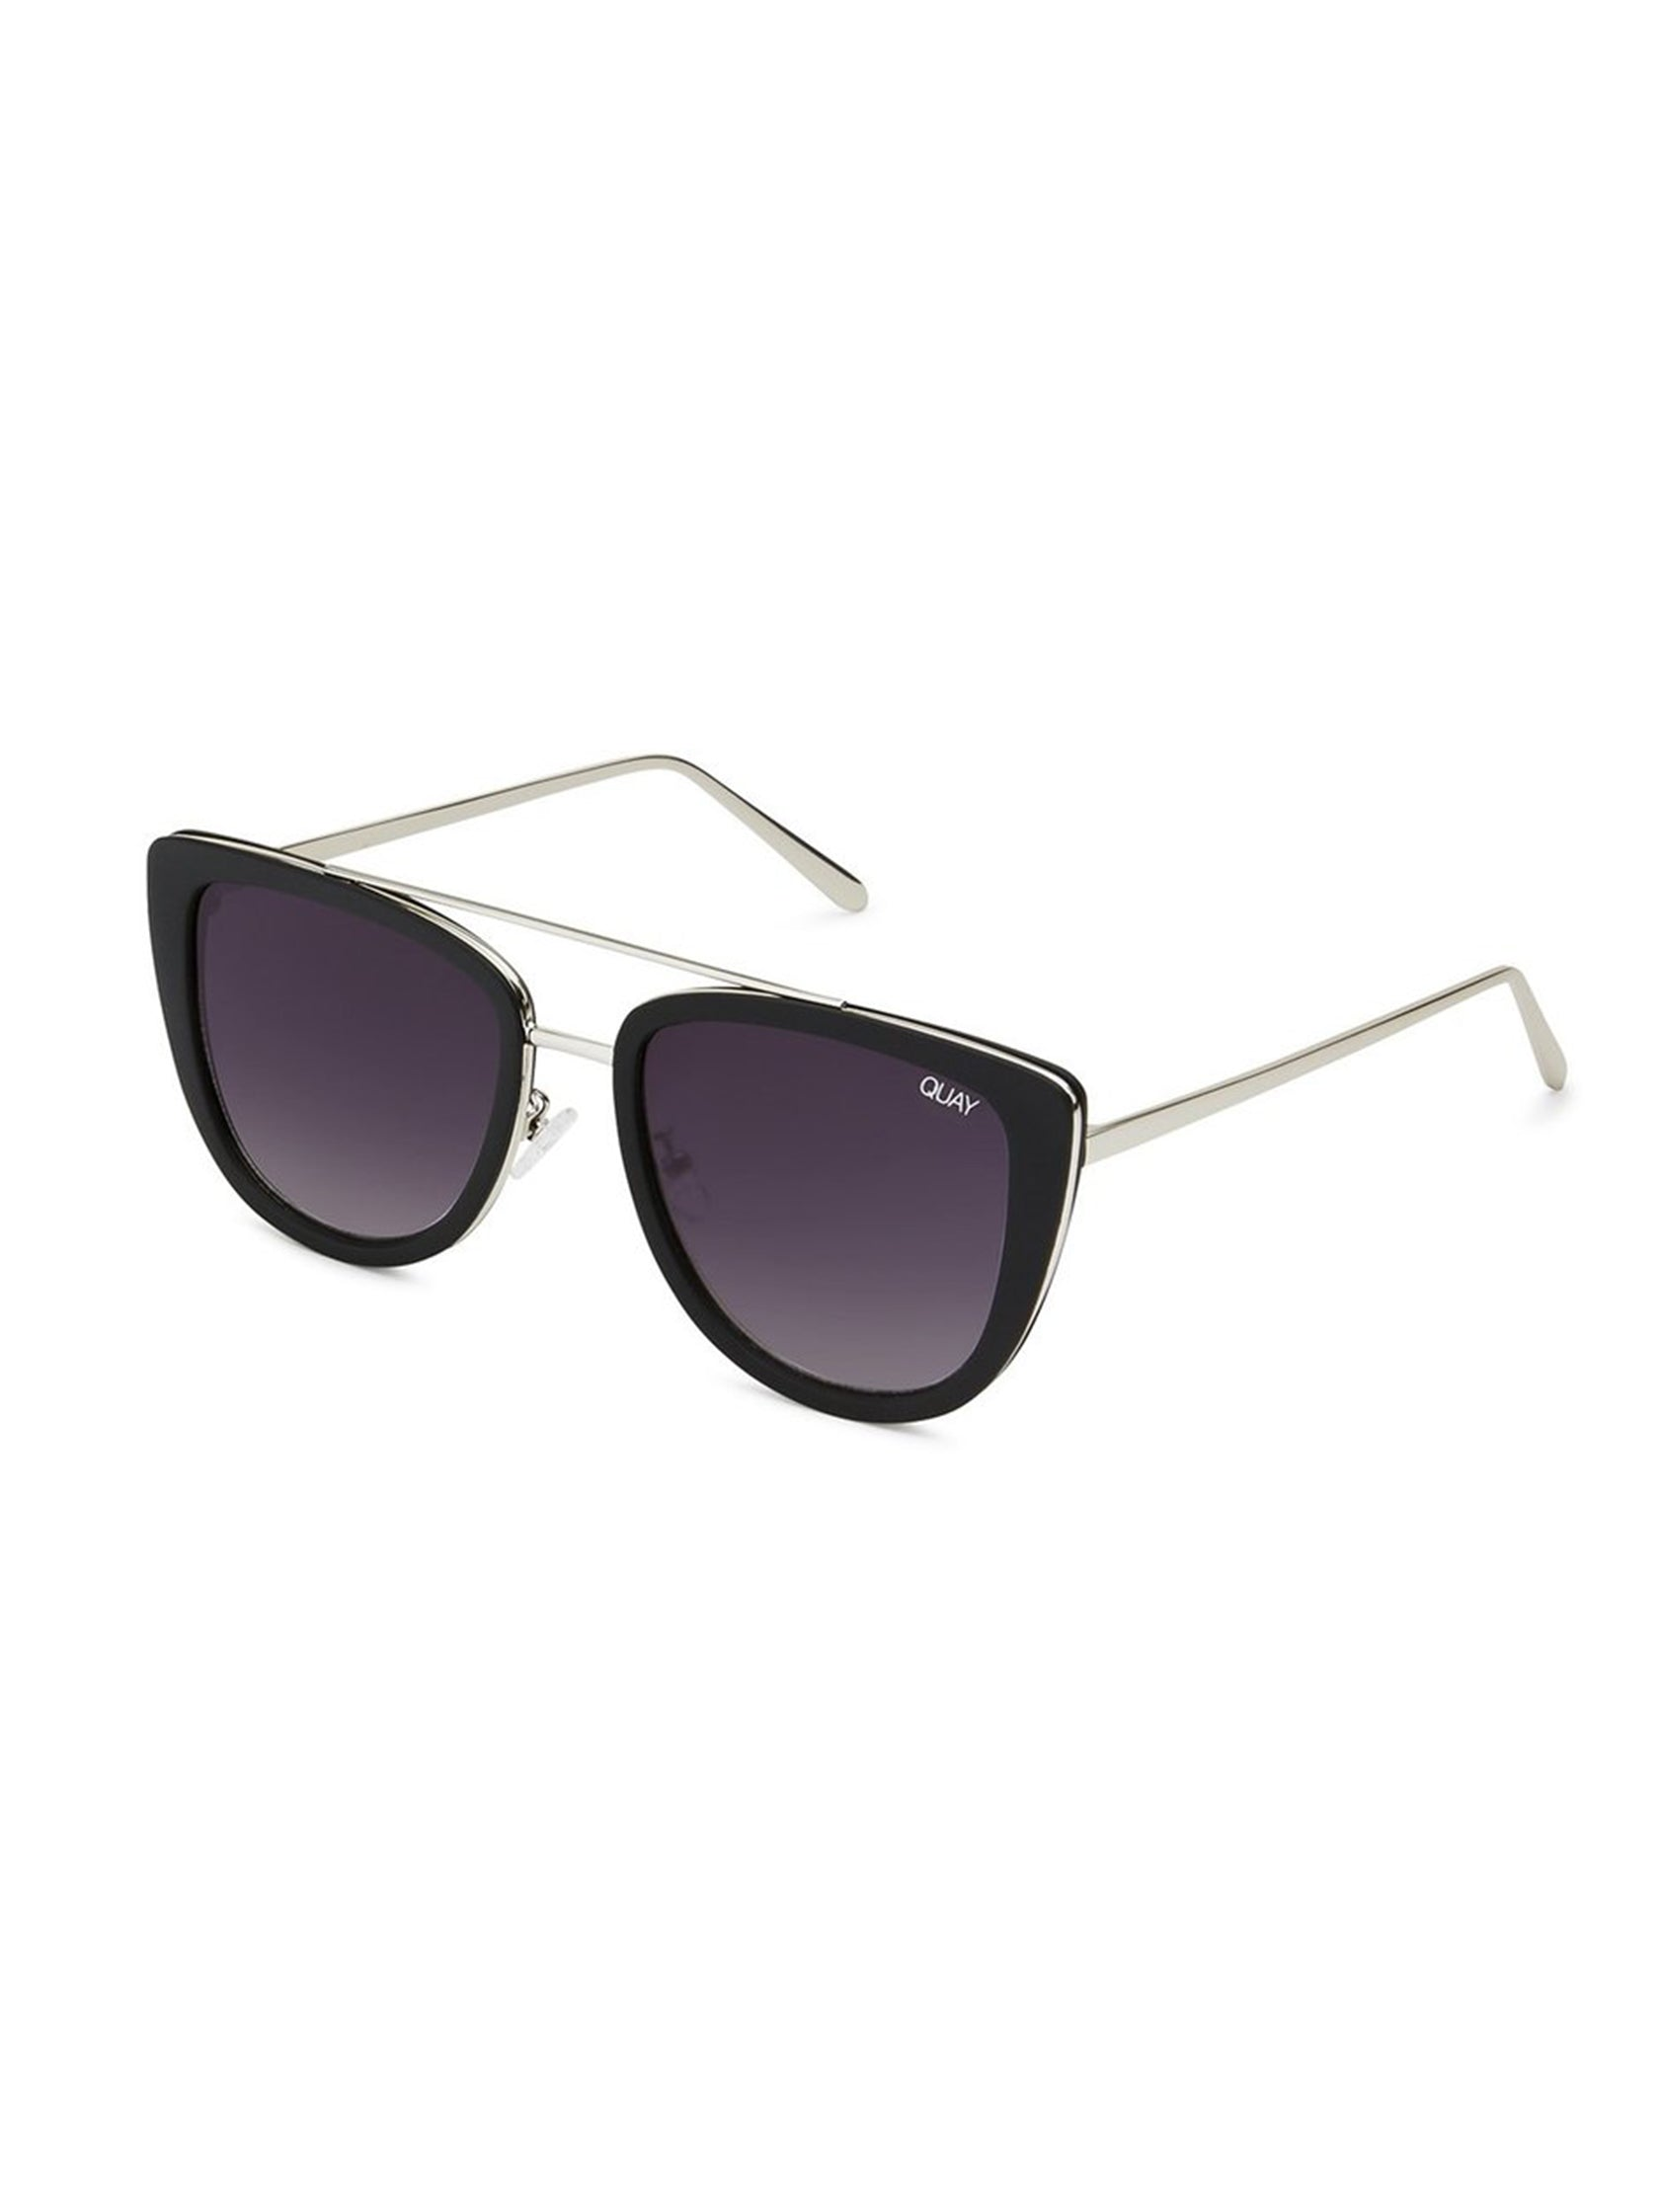 Woman wearing a sunglasses rental from Quay Australia called French Kiss 55mm Cat Eye Sunglasses